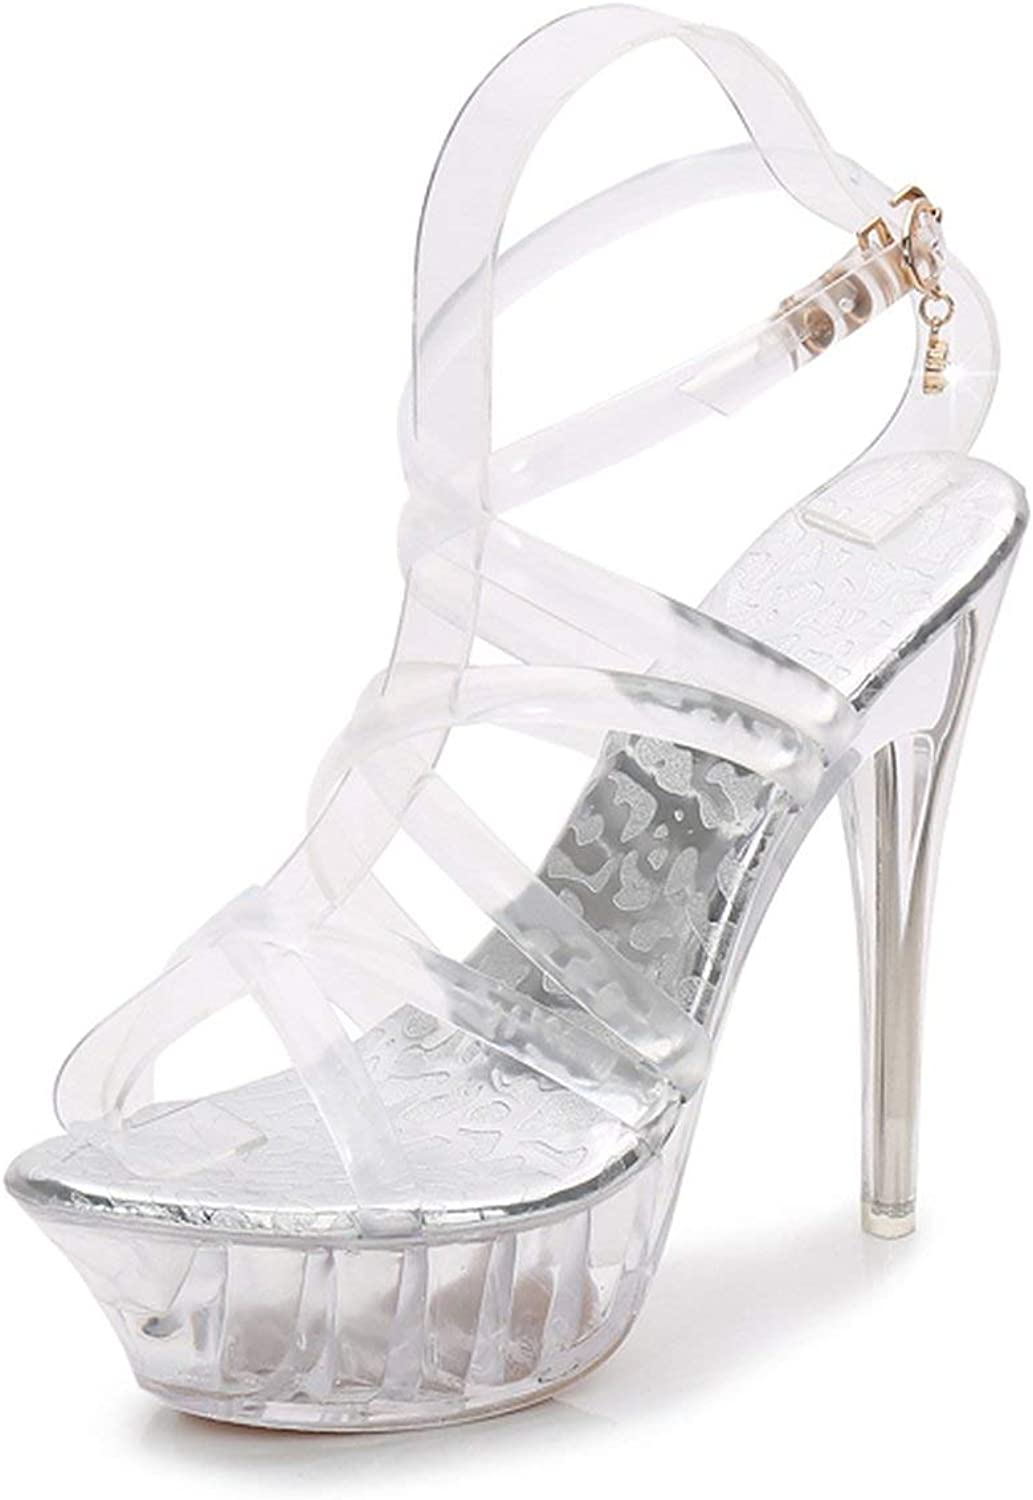 High Heels Womens Sandals Transparent Crystal Heel Model T Stage Sexy Lady Heeled shoes 35-43,1459,12